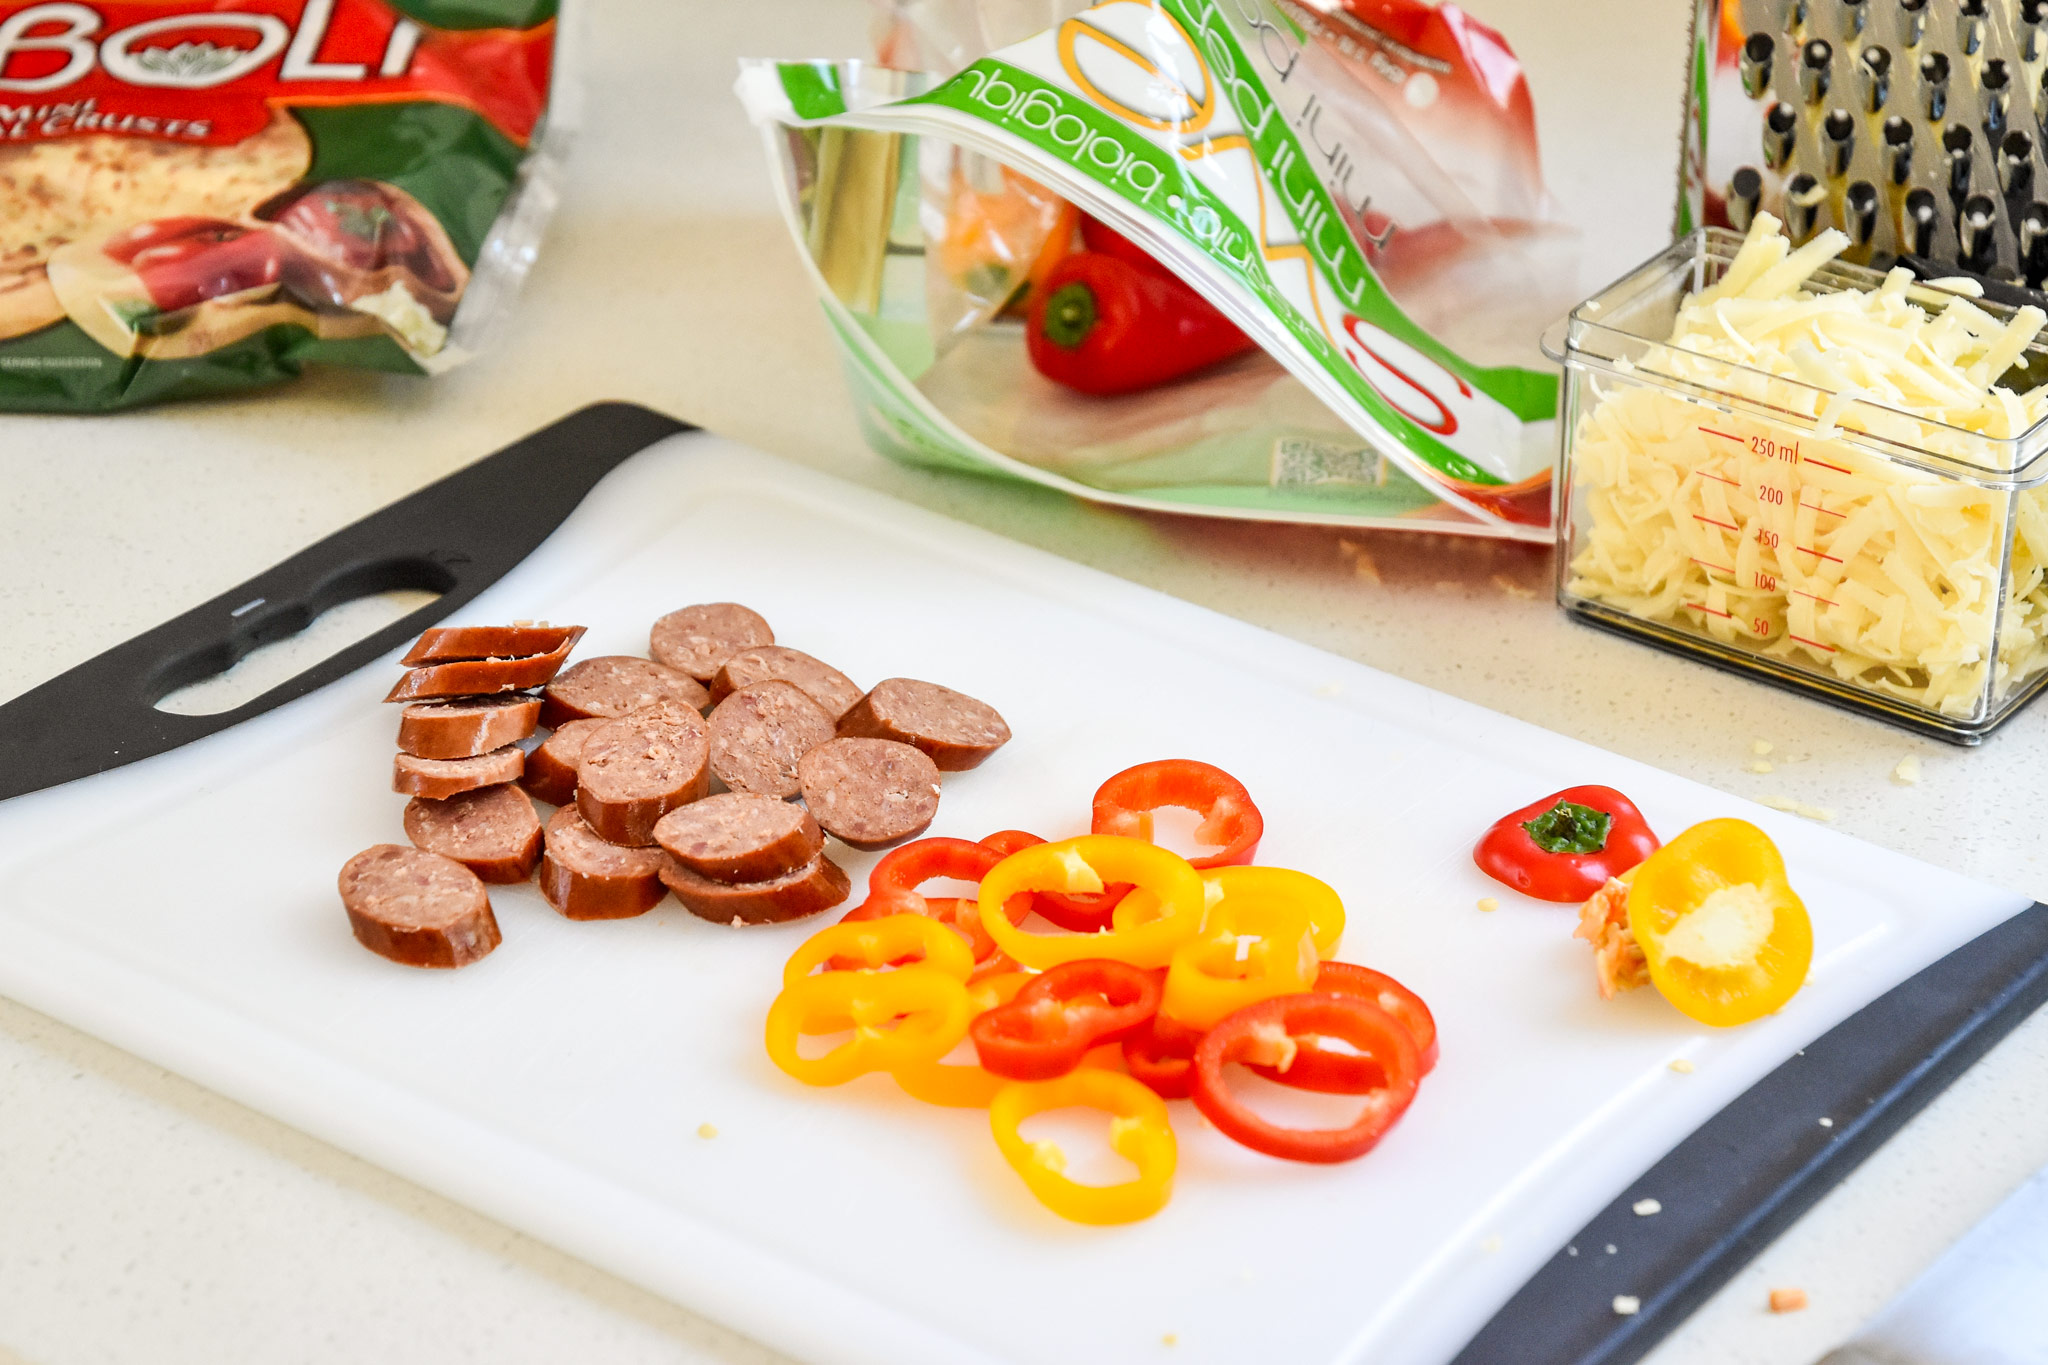 Ingredients for the sausage and pepper personal pizzas being cut on a cutting board